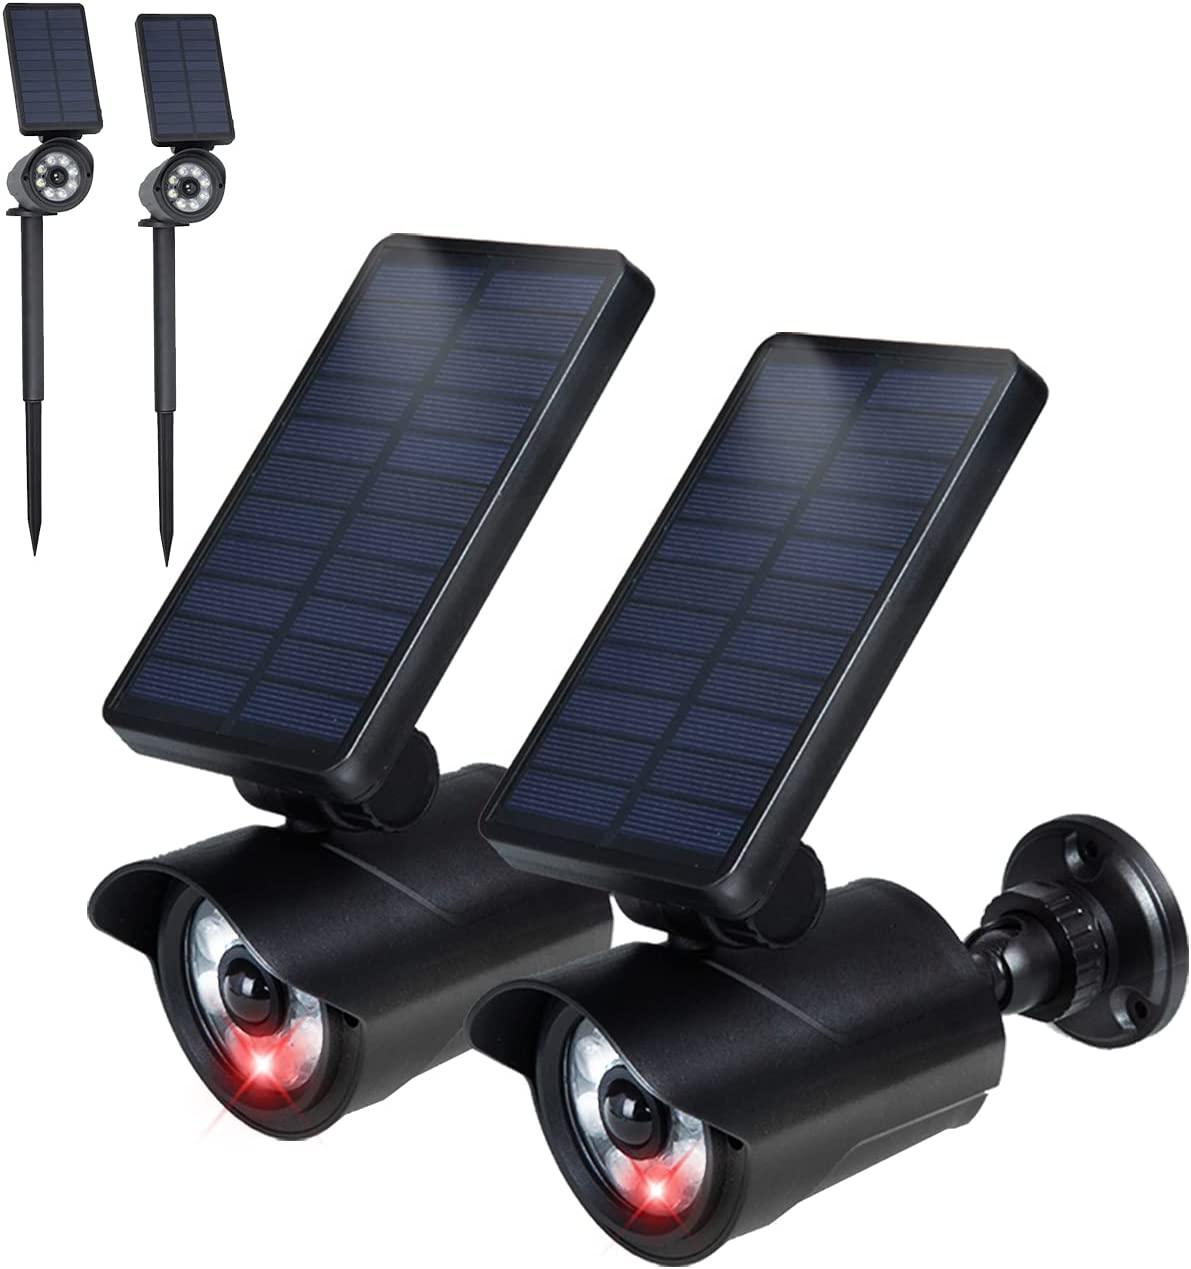 2021 Motion Sensor Solar Security Lights Outdoor 2-in-1 Landscape Spotlights Wall Lights Dummy Camera with Flashing Red LED for Yard Garden Driveway Pool Patio 2 Pack